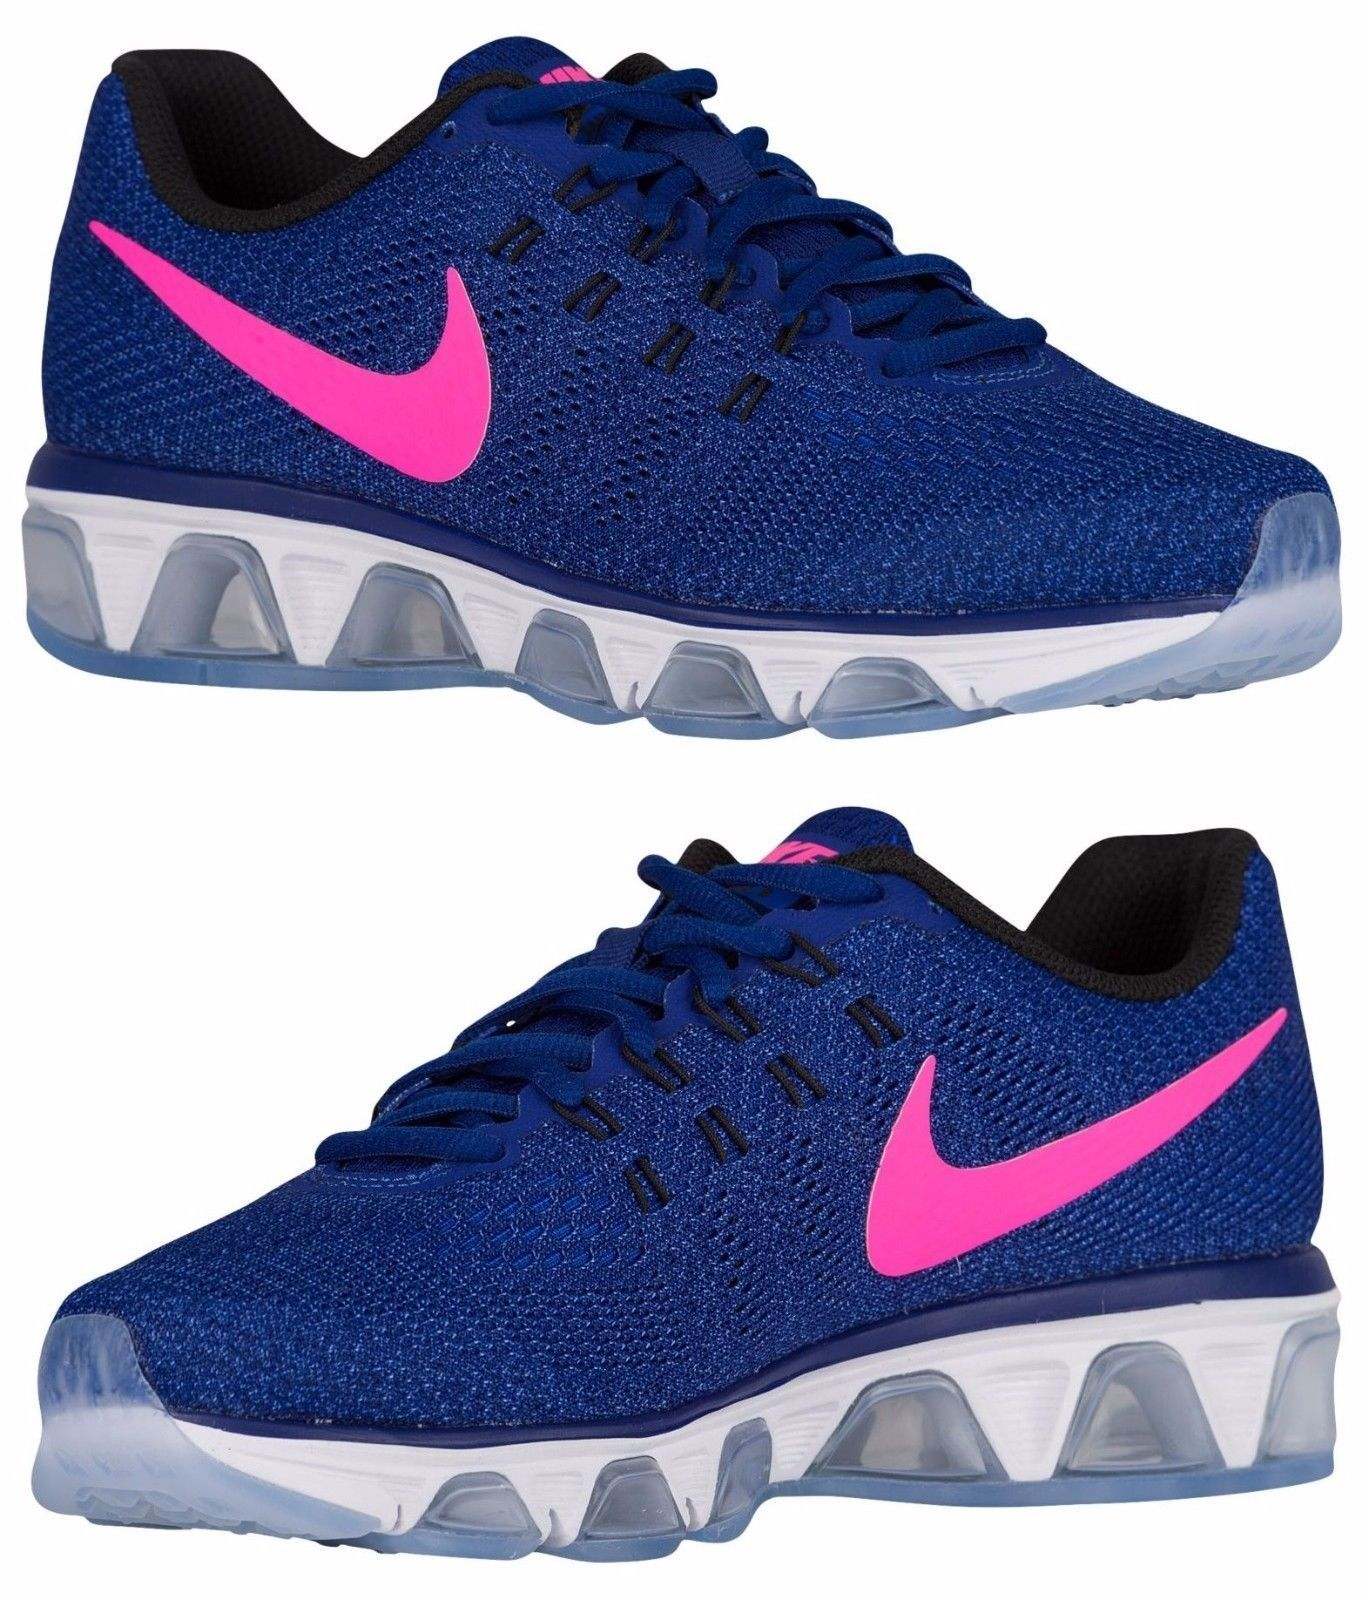 nike air max tailwind 8 women s running deep royal black racer